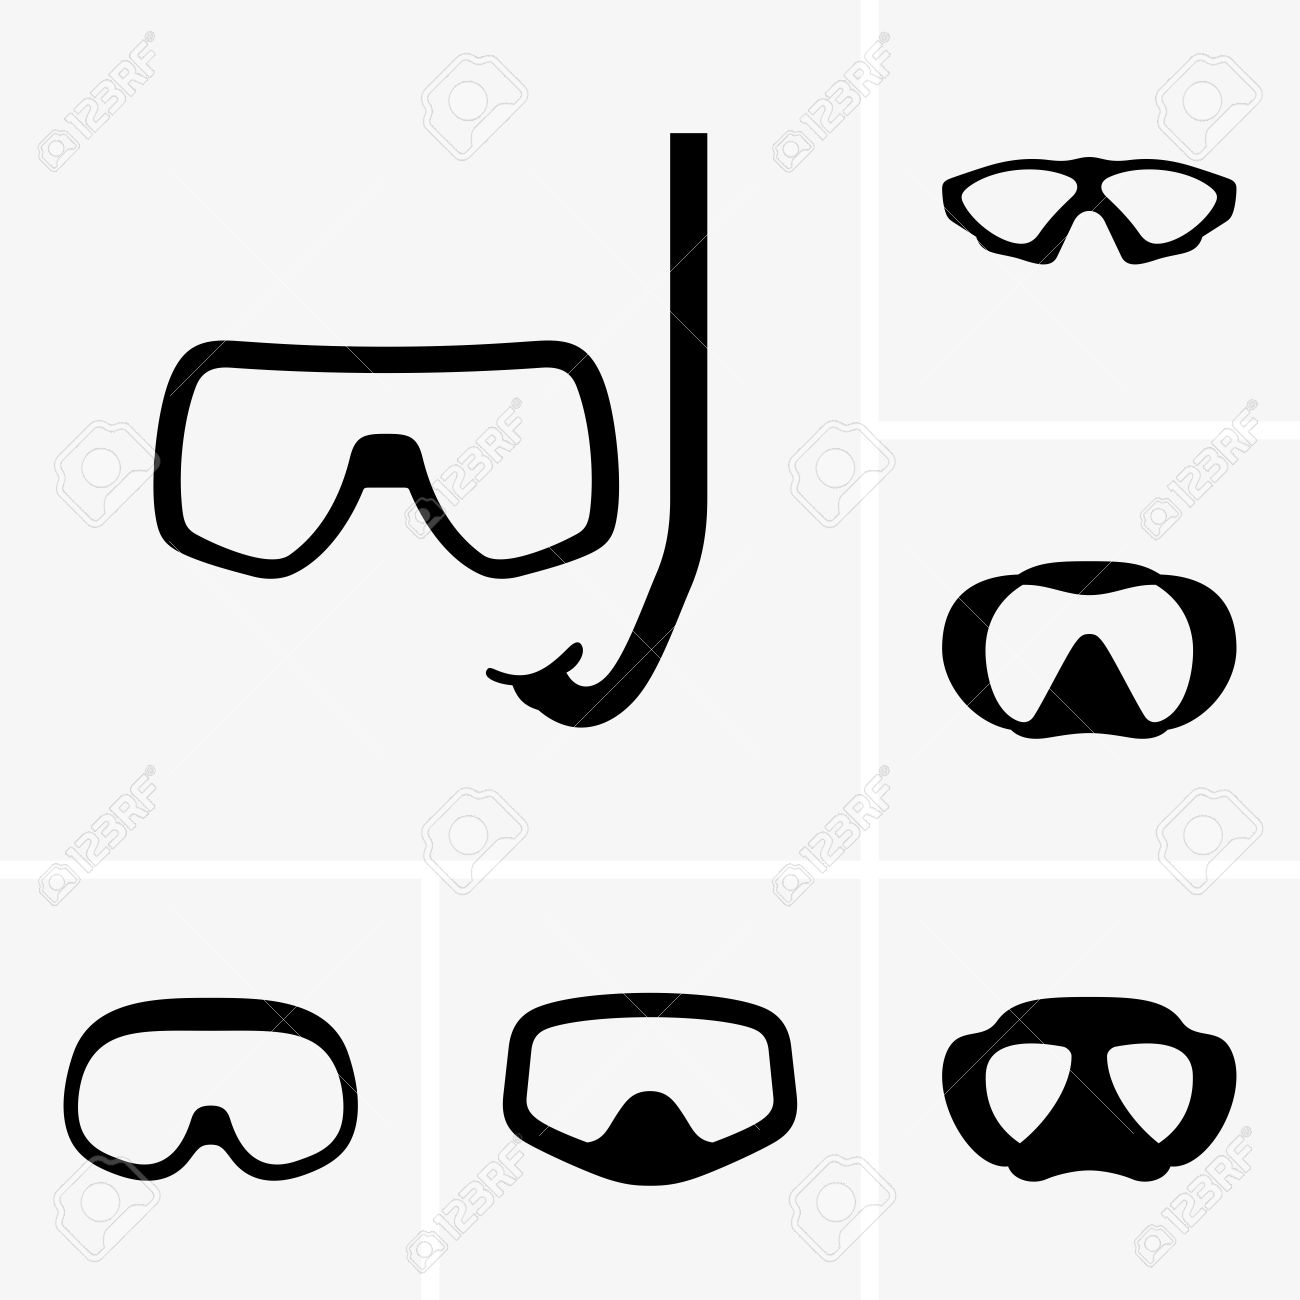 Scuba Diving Goggles Clip Art.